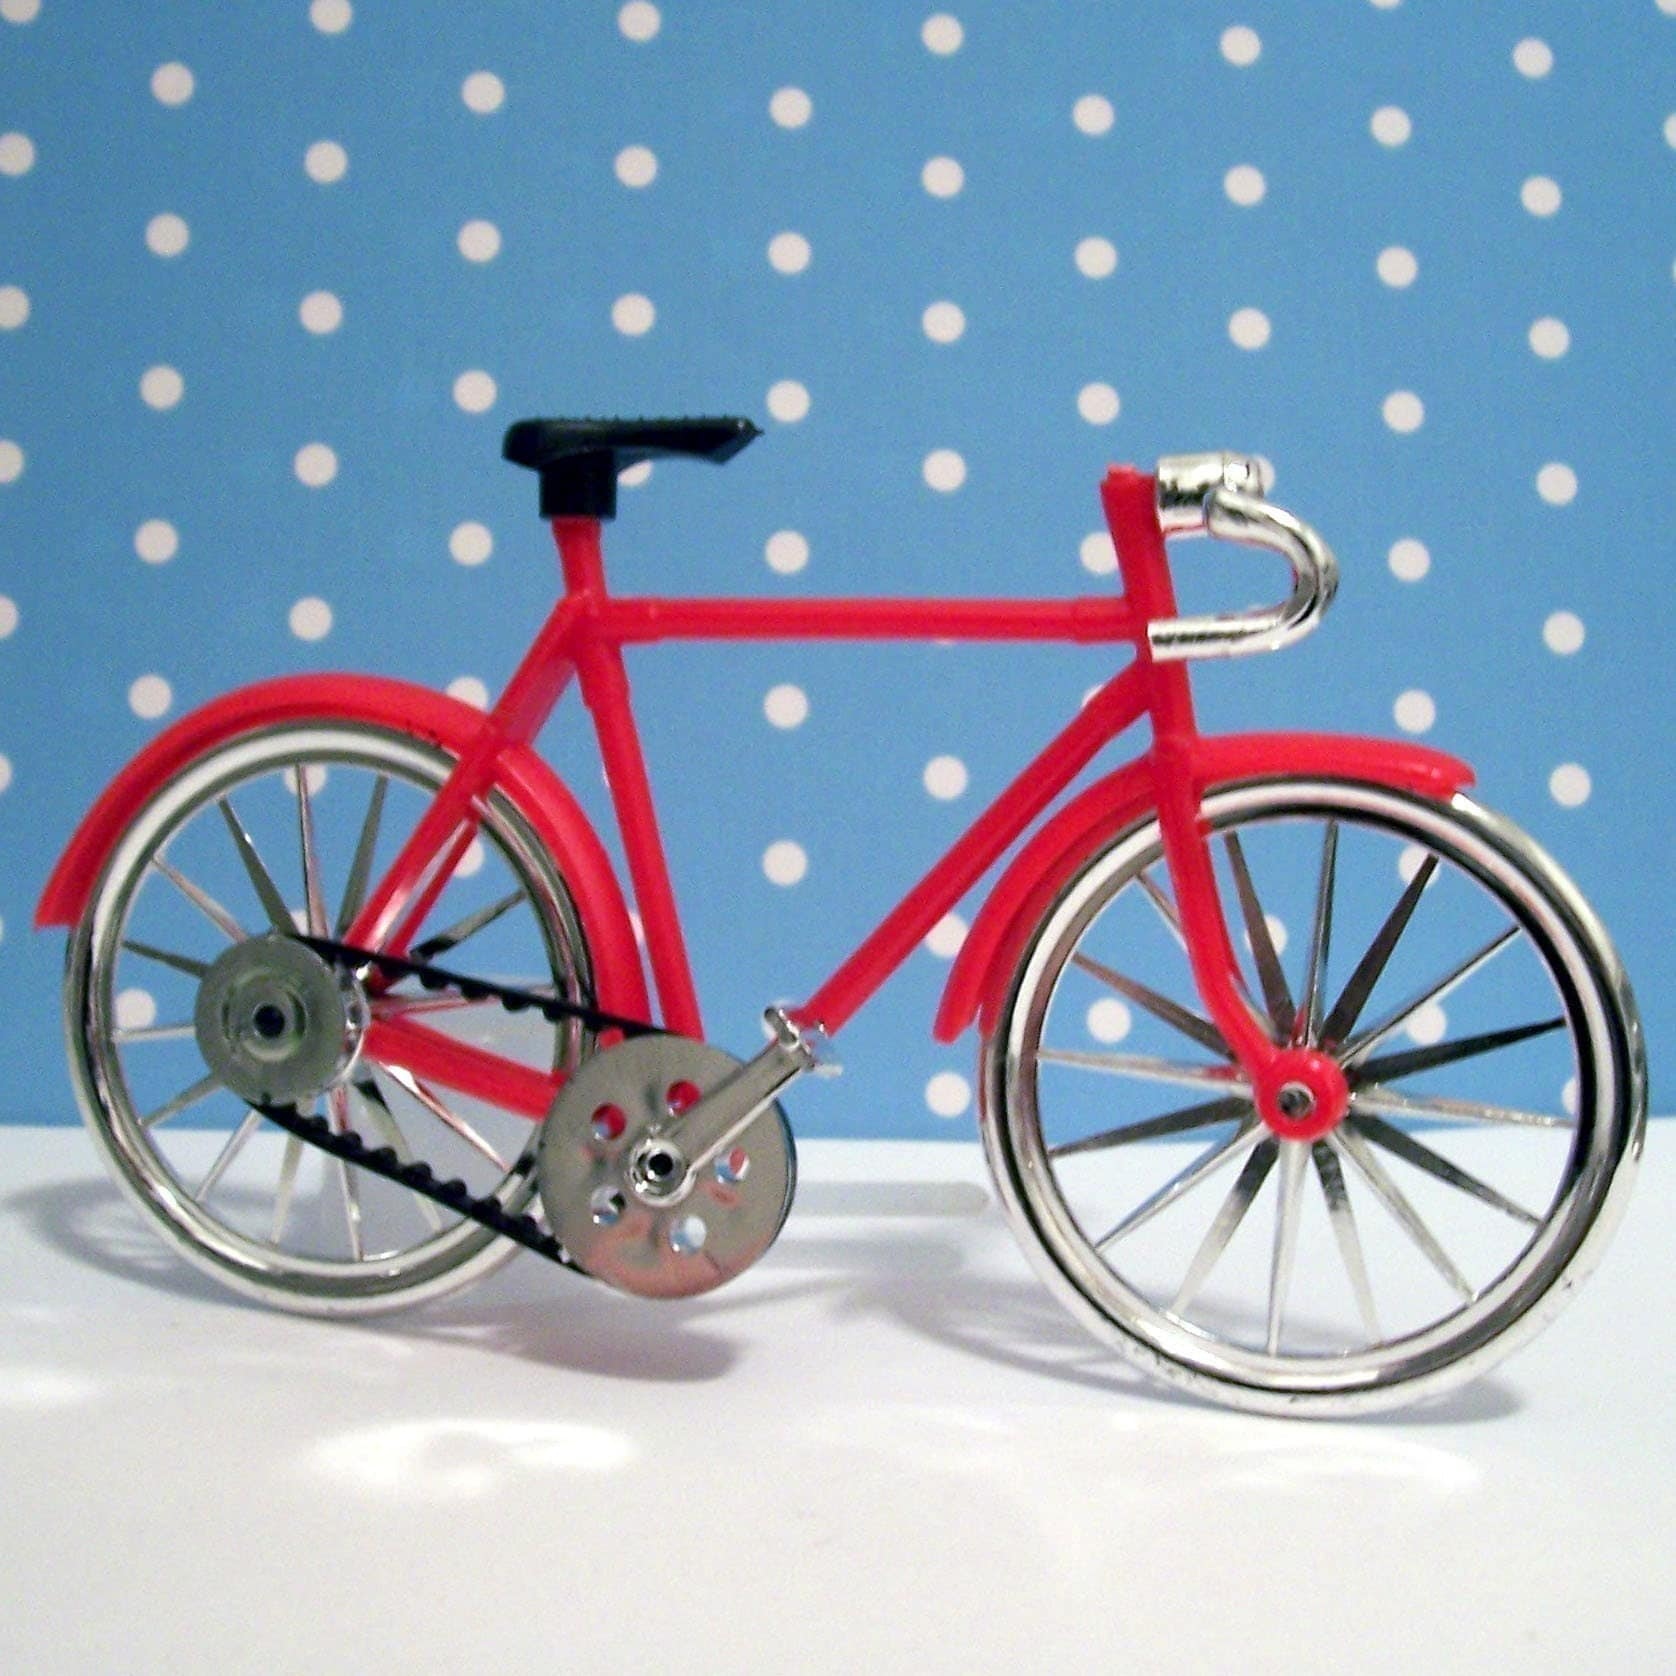 Bike Decoration For Cake : Red Bicycle Cake Topper by LulusCupcakeBoutique on Etsy